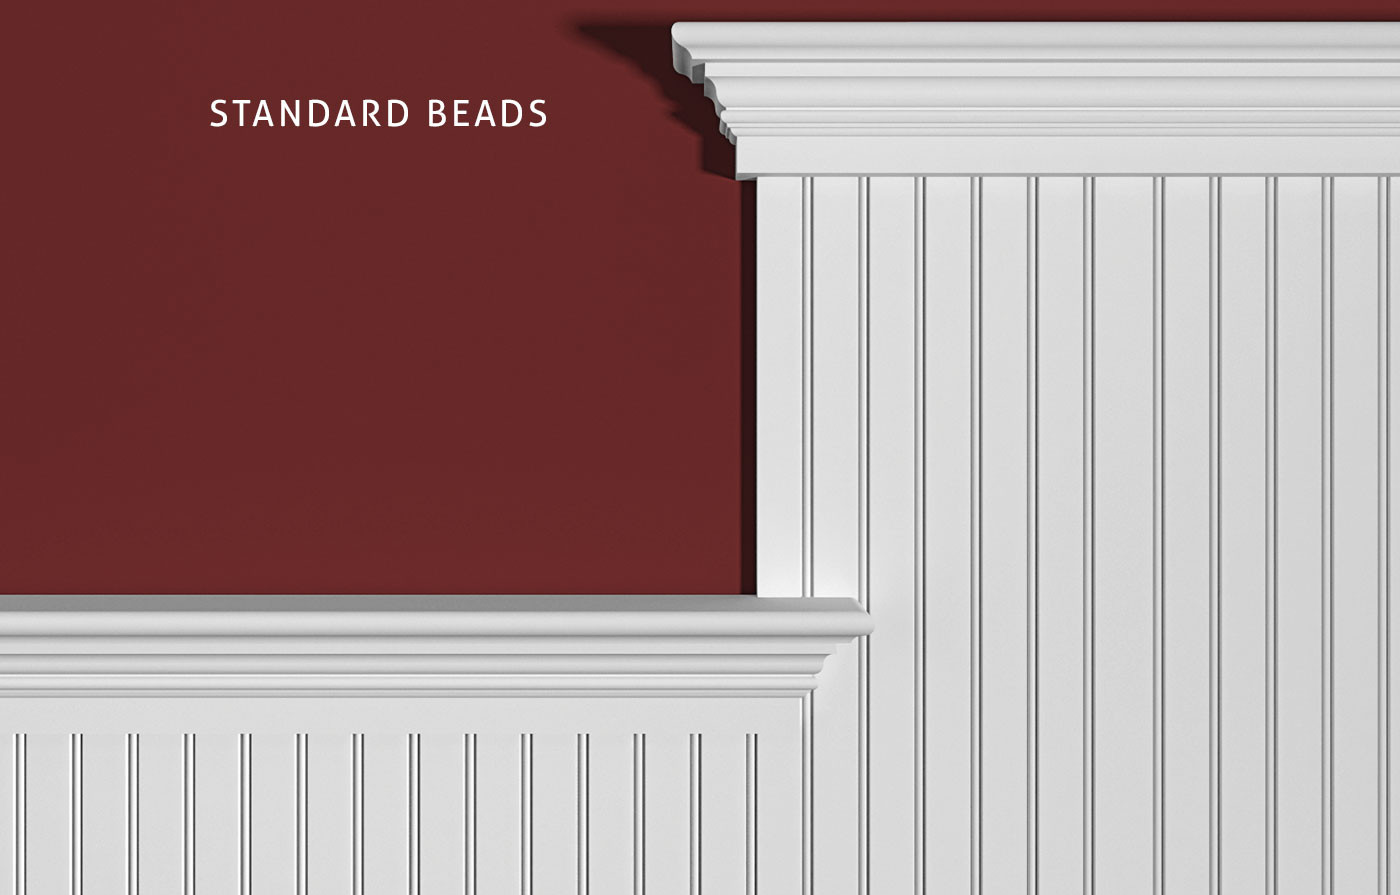 2 Inches On Center Standard Bead, Cap Combination: 1x4, SC214, FS312